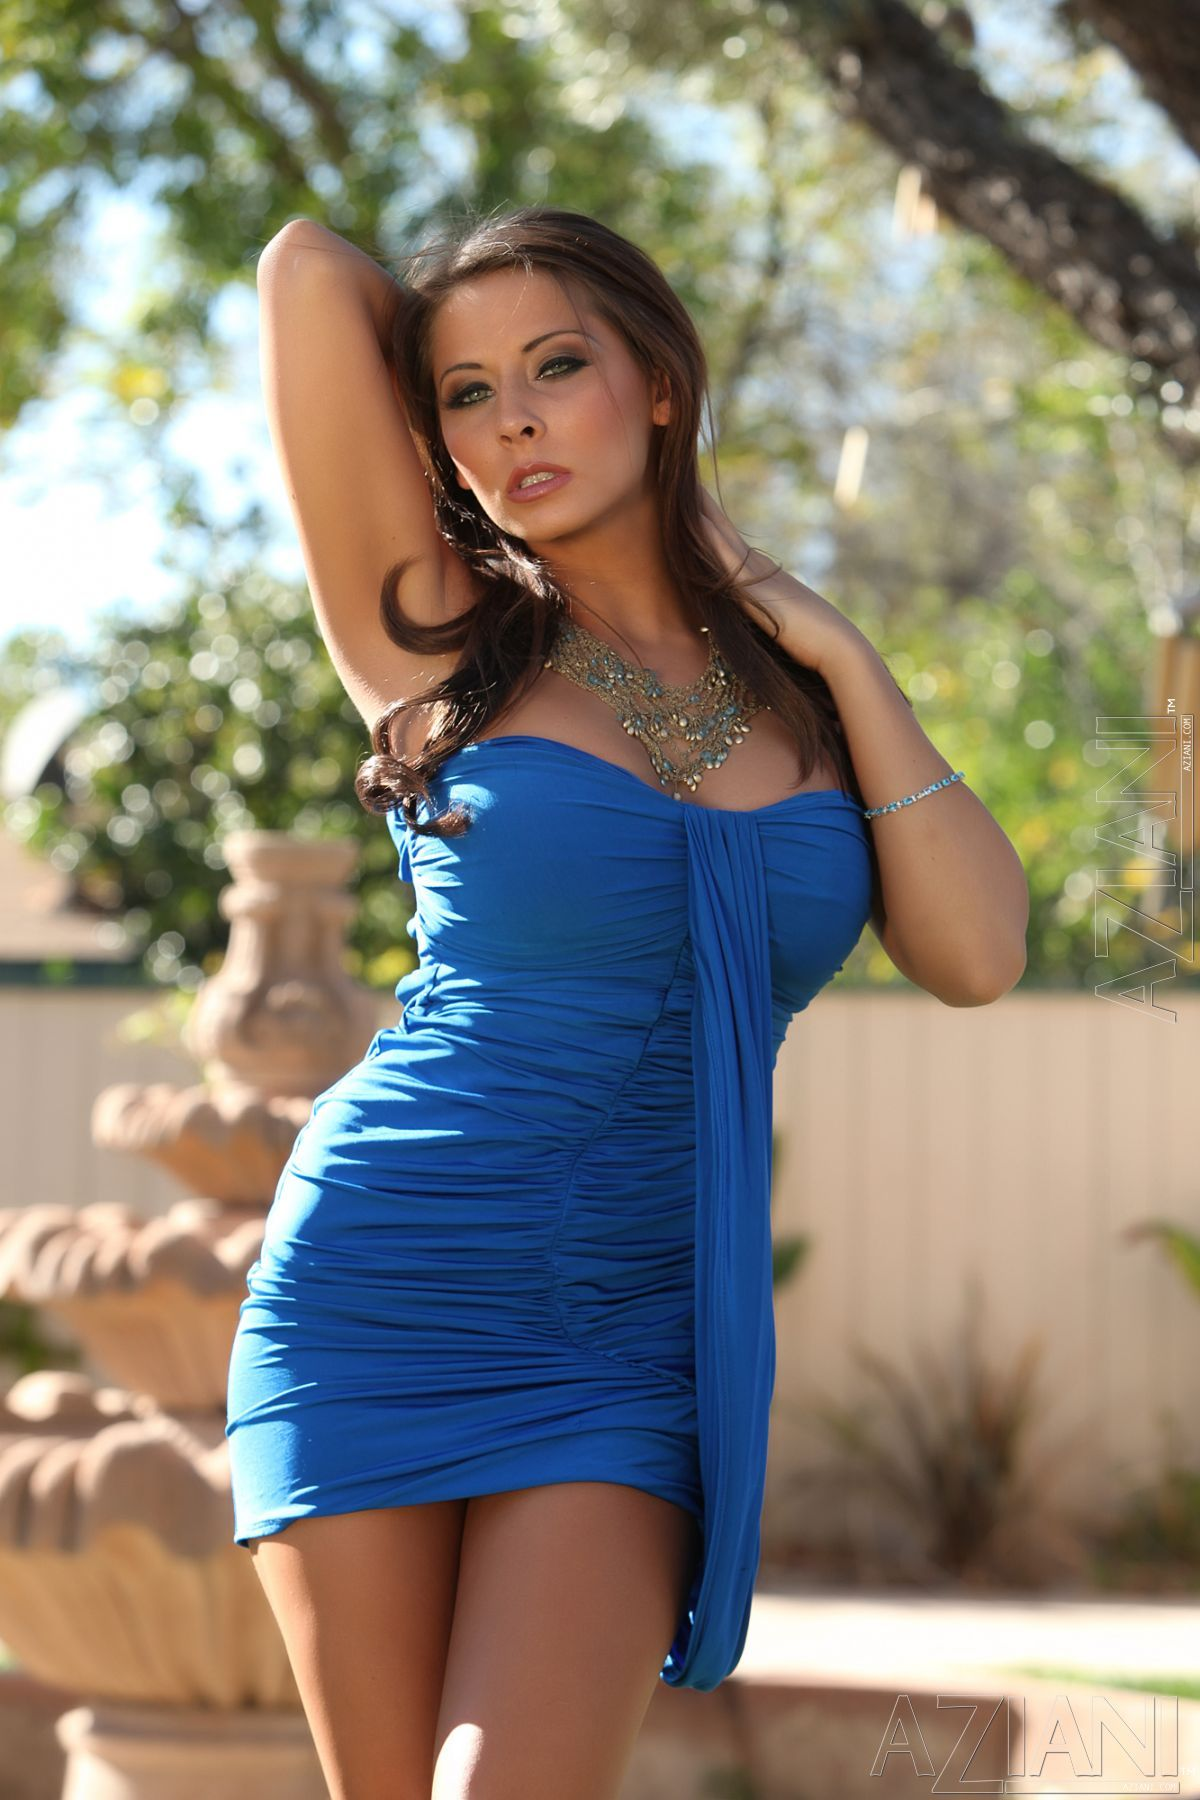 Madison Ivy Date Of Birth